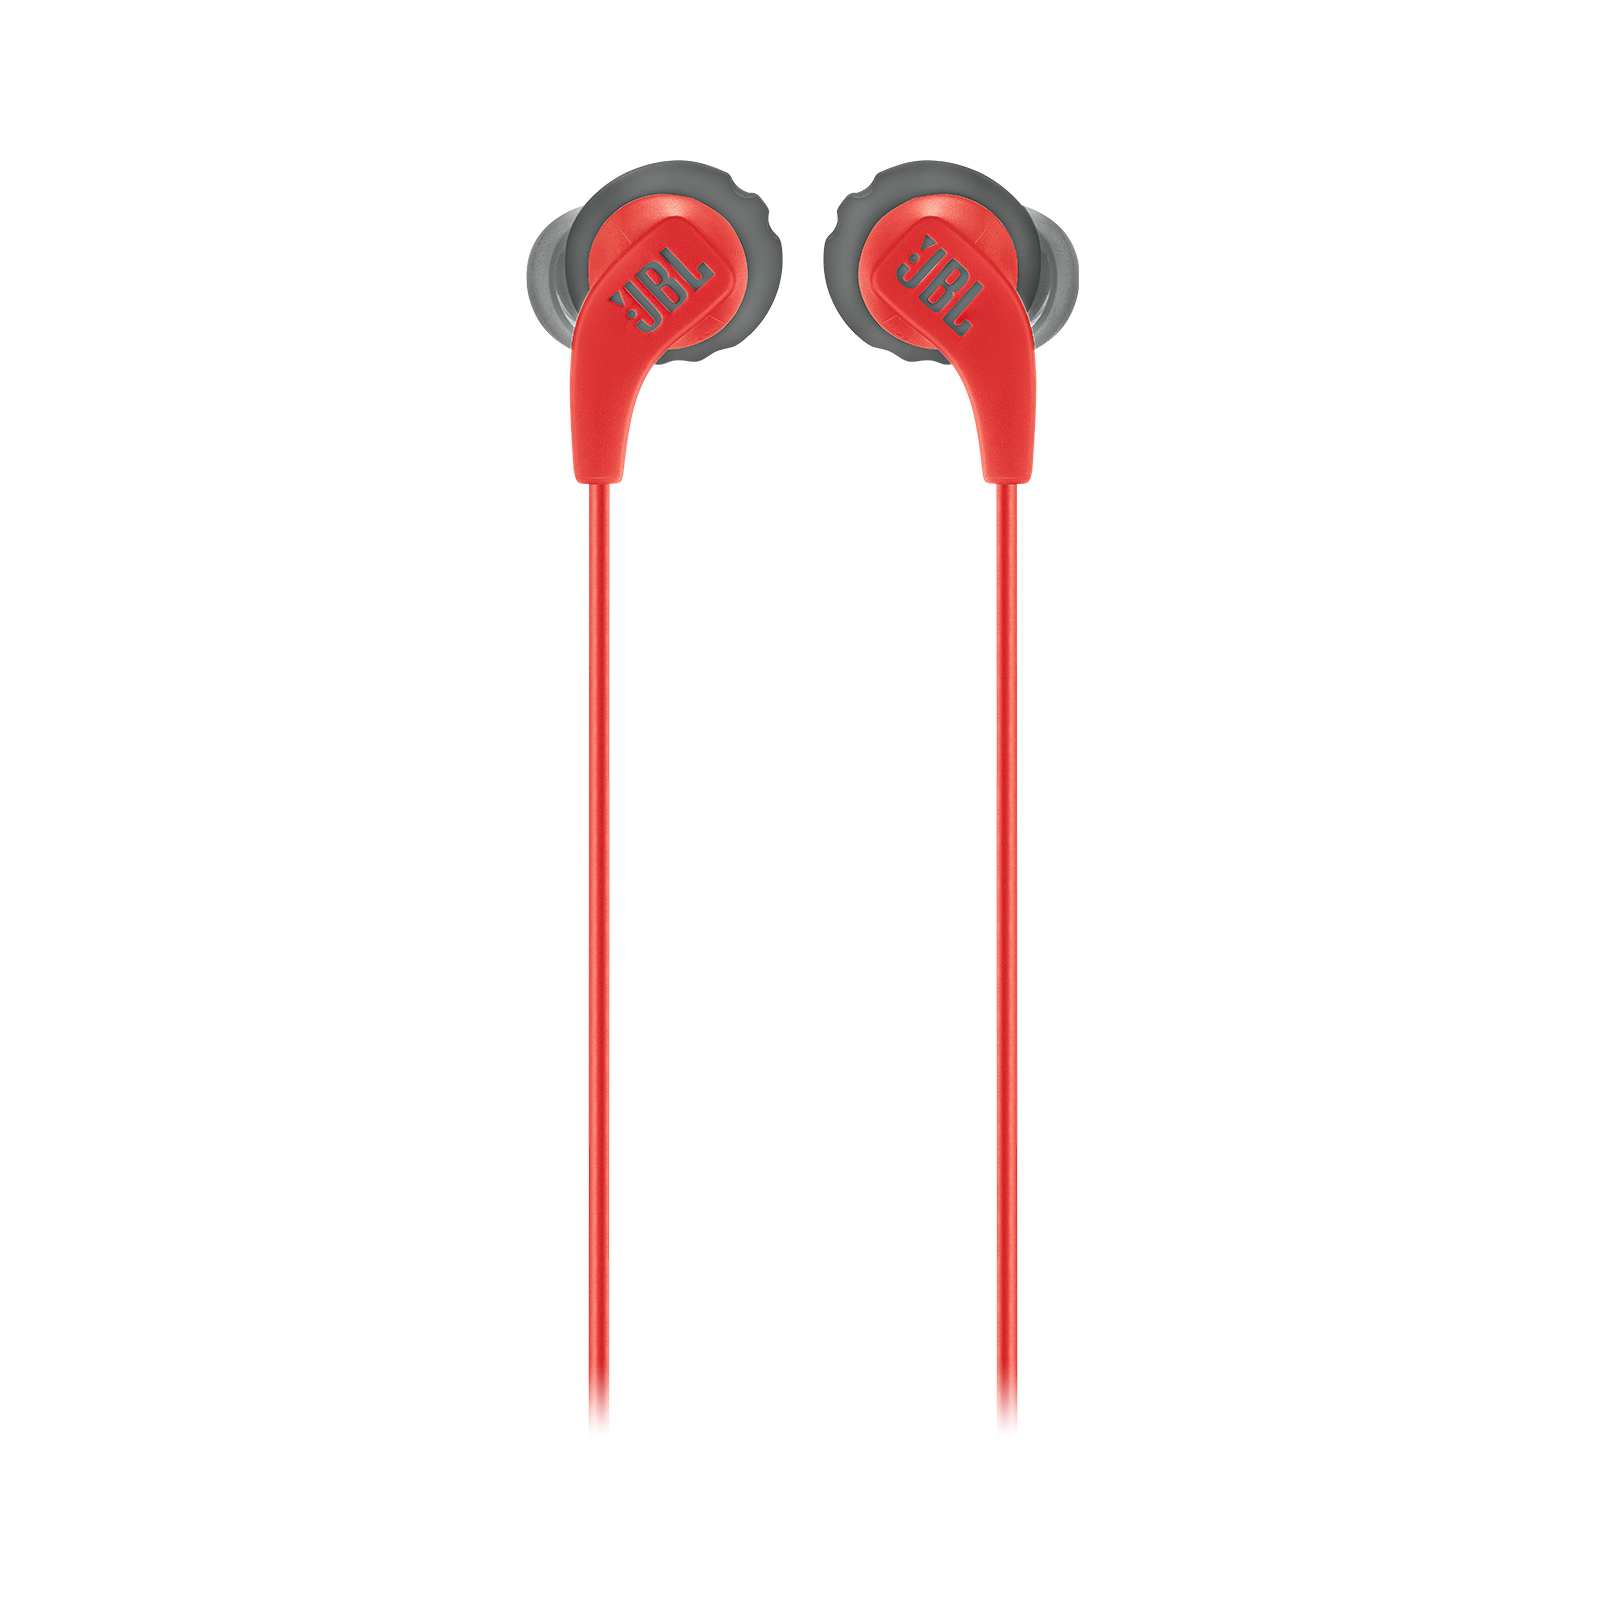 JBL Endurance RUN - Red - Sweatproof Wired Sport In-Ear Headphones - Front